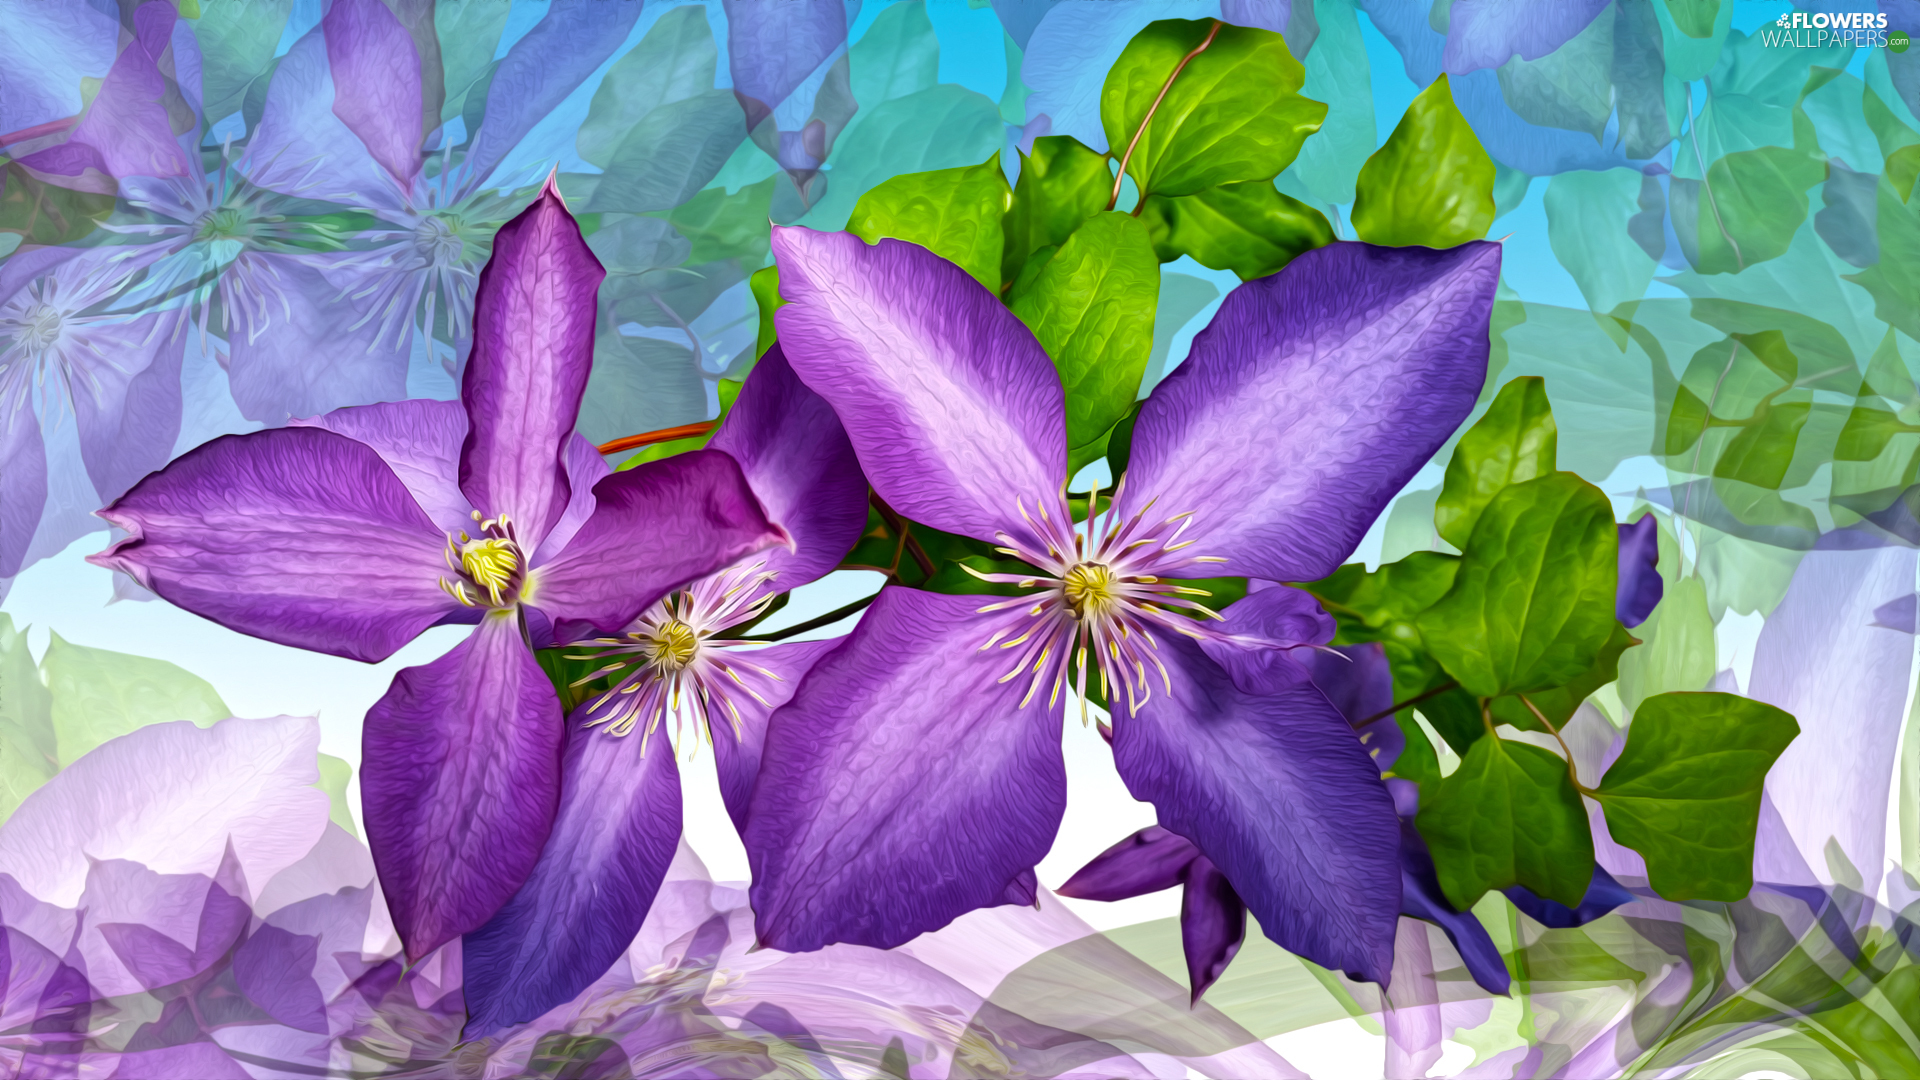 Flowers, Clematis, graphics, purple